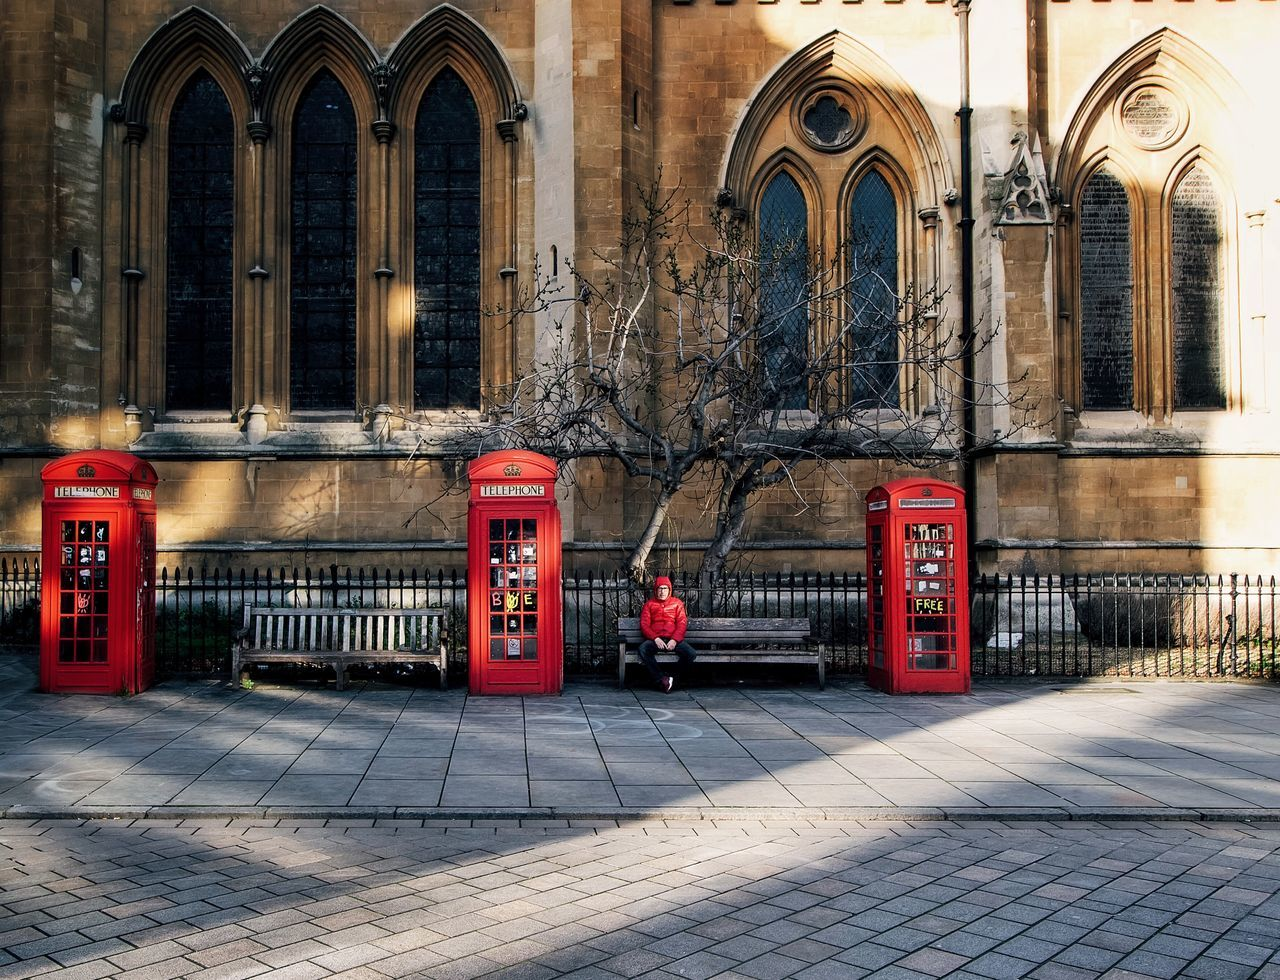 When people match places That's Me Taking Pictures City Urbanphotography Urban Taking Photos VSCO London Shoot The People Red Phone Boxes Phone Box Phone Booth United Kingdom The Week On EyeEm